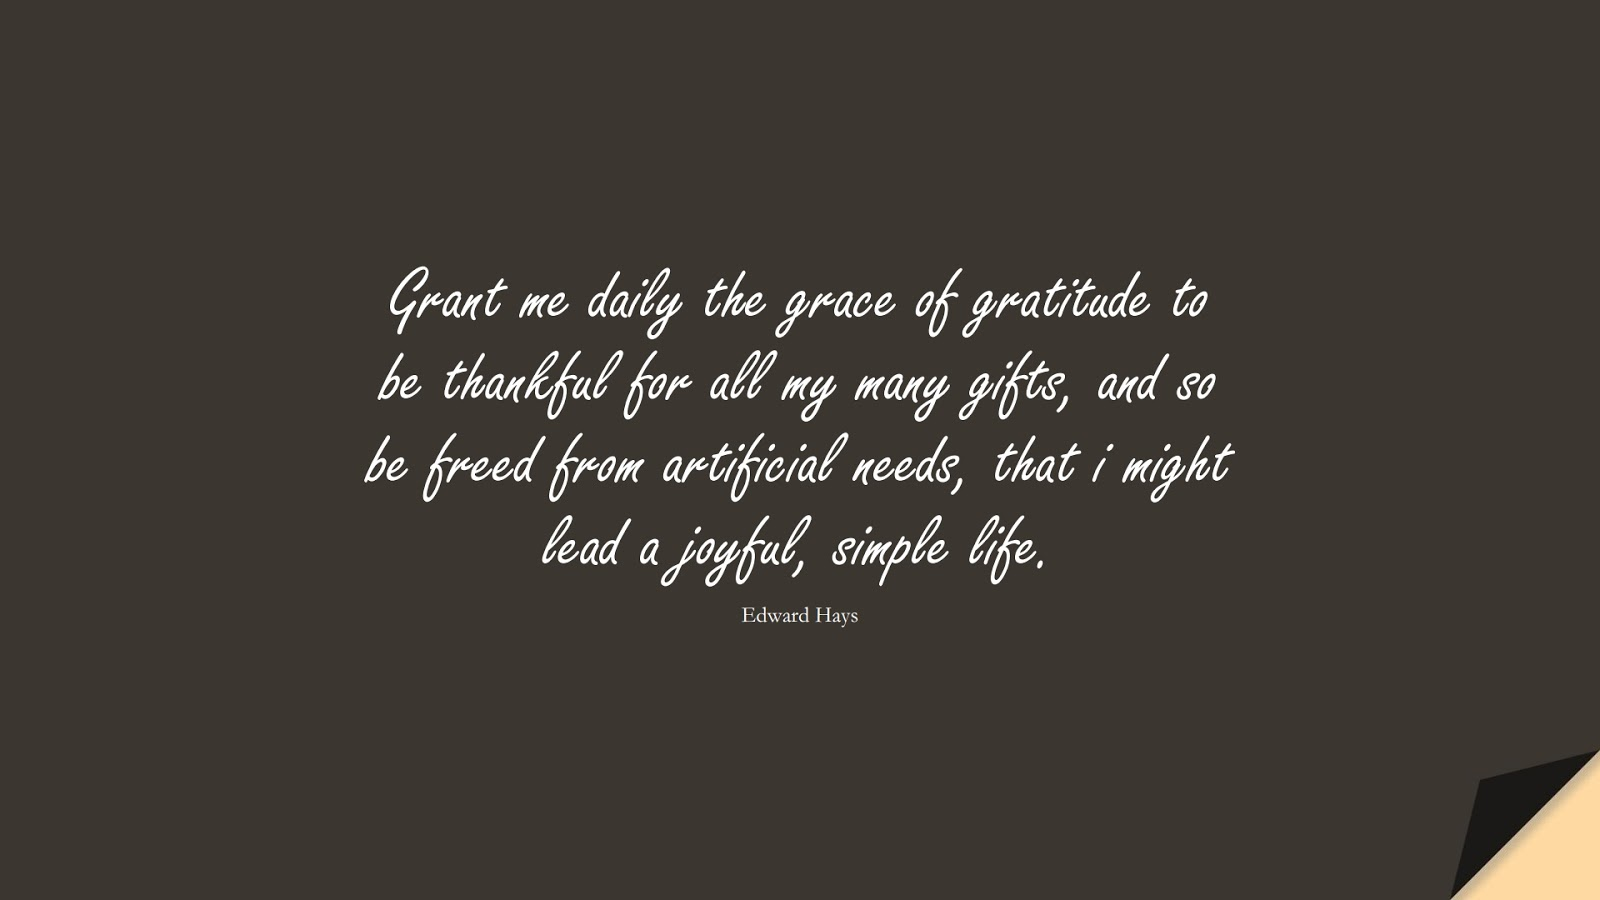 Grant me daily the grace of gratitude to be thankful for all my many gifts, and so be freed from artificial needs, that i might lead a joyful, simple life. (Edward Hays);  #SpiritQuotes